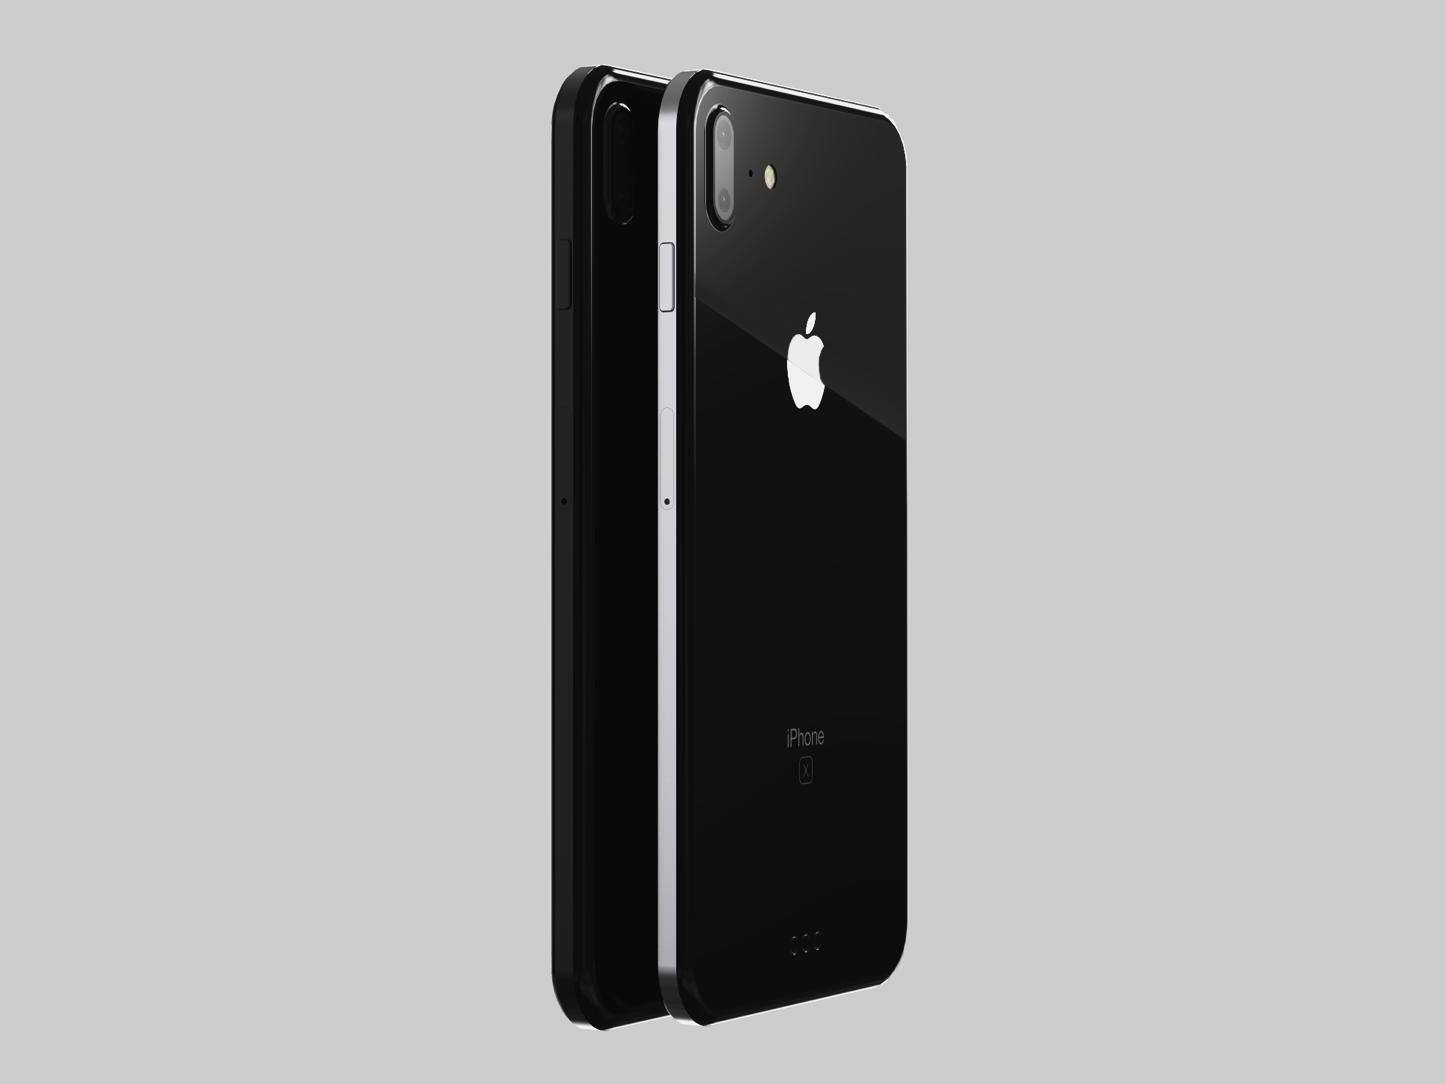 iPhone 8 x-edition